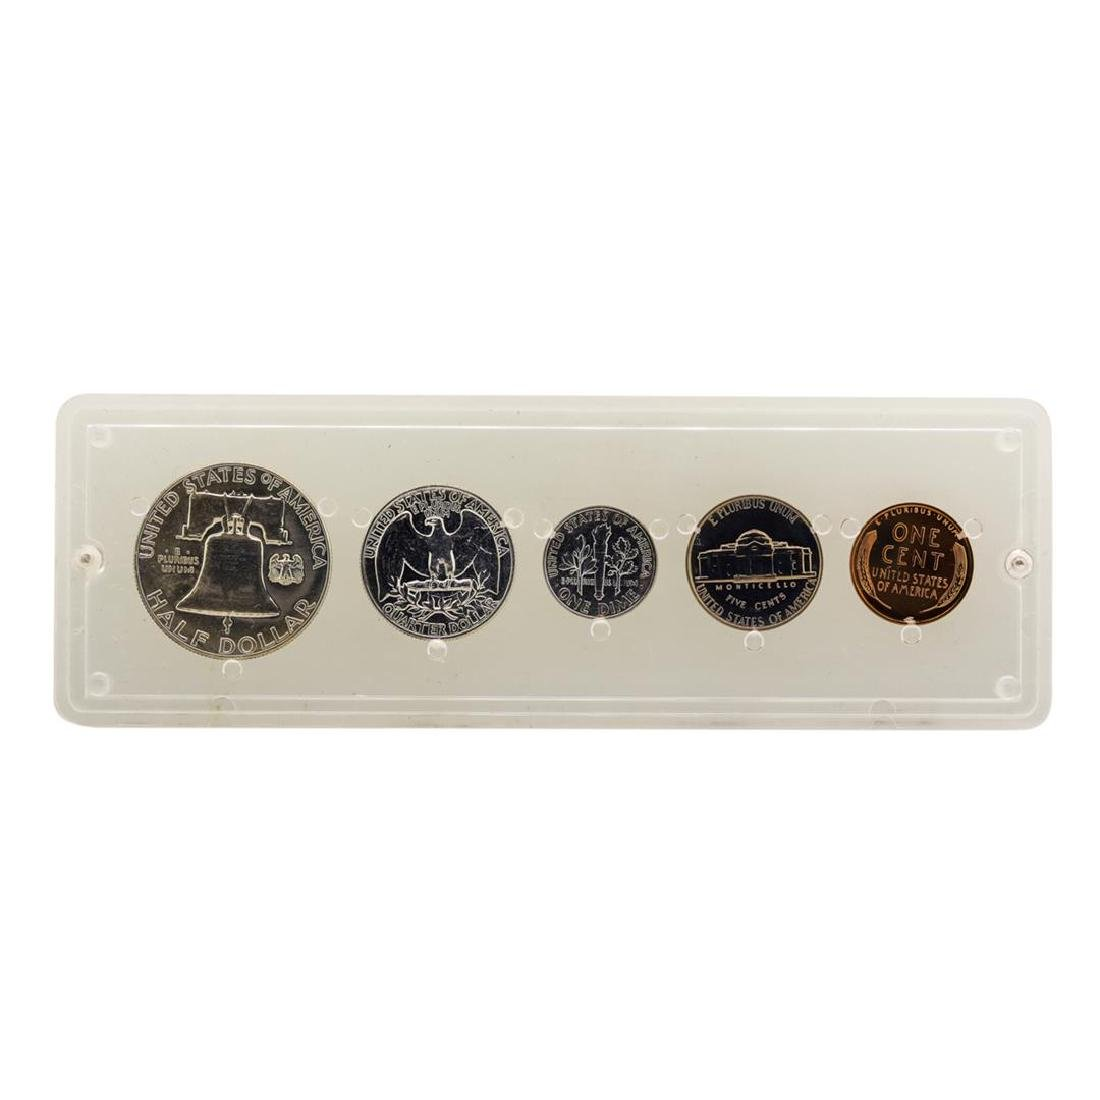 1958 (5) Coin Proof Set - 2